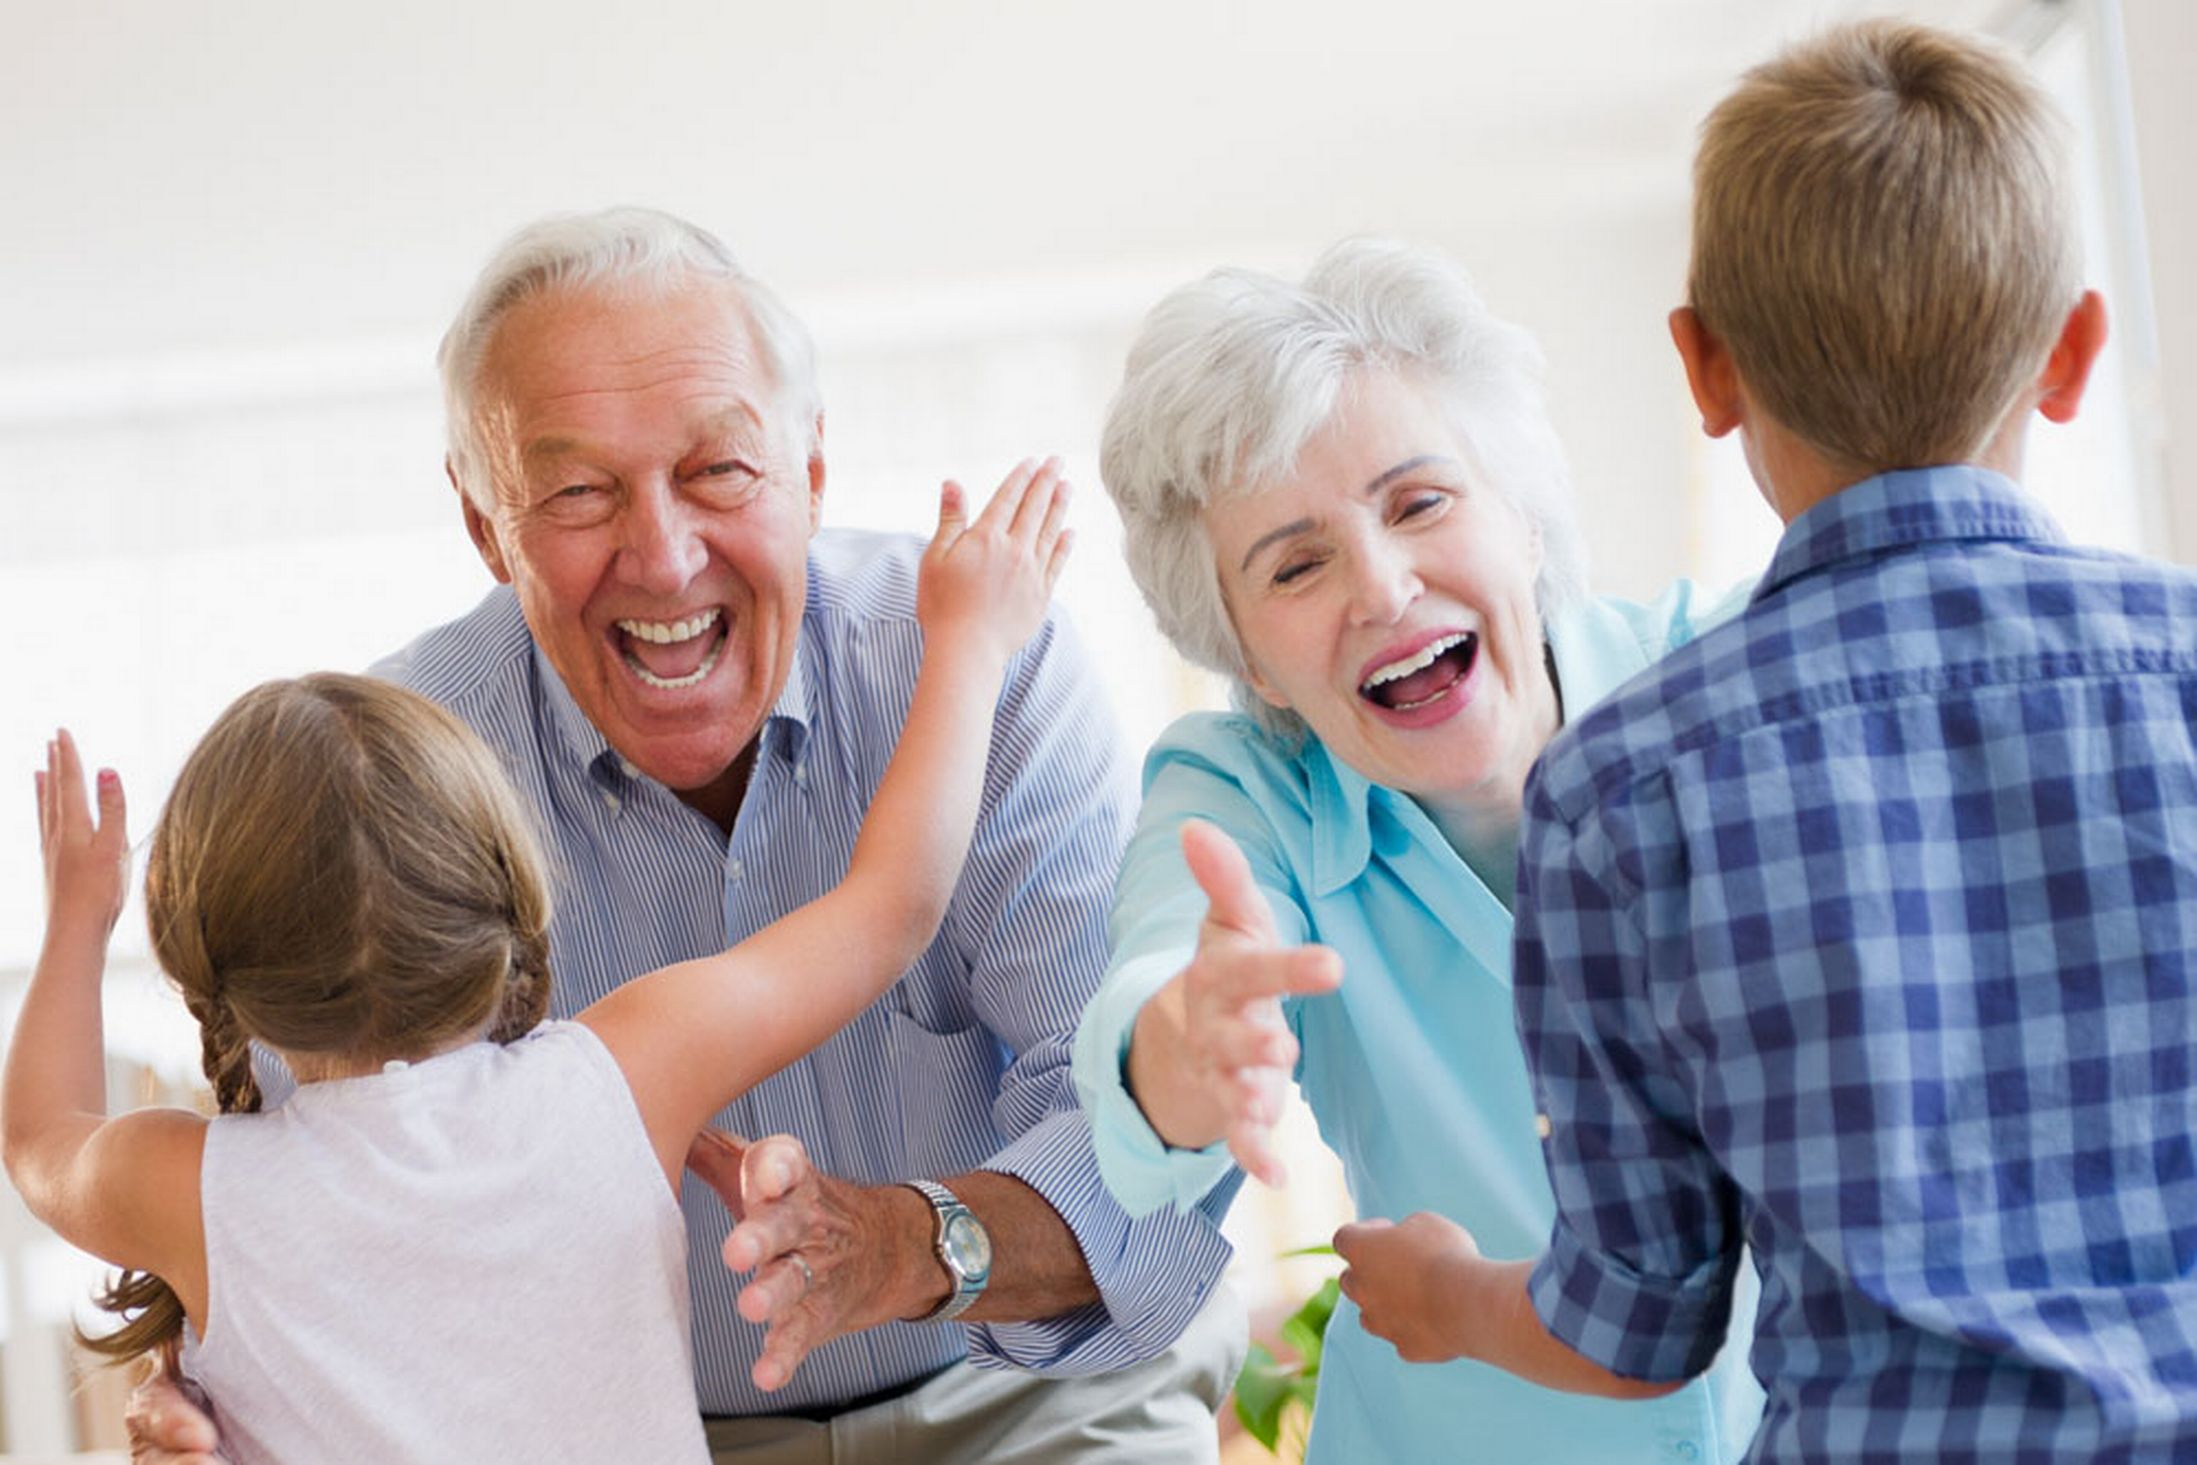 Grandparent's Visitation Rights Clarified by Court